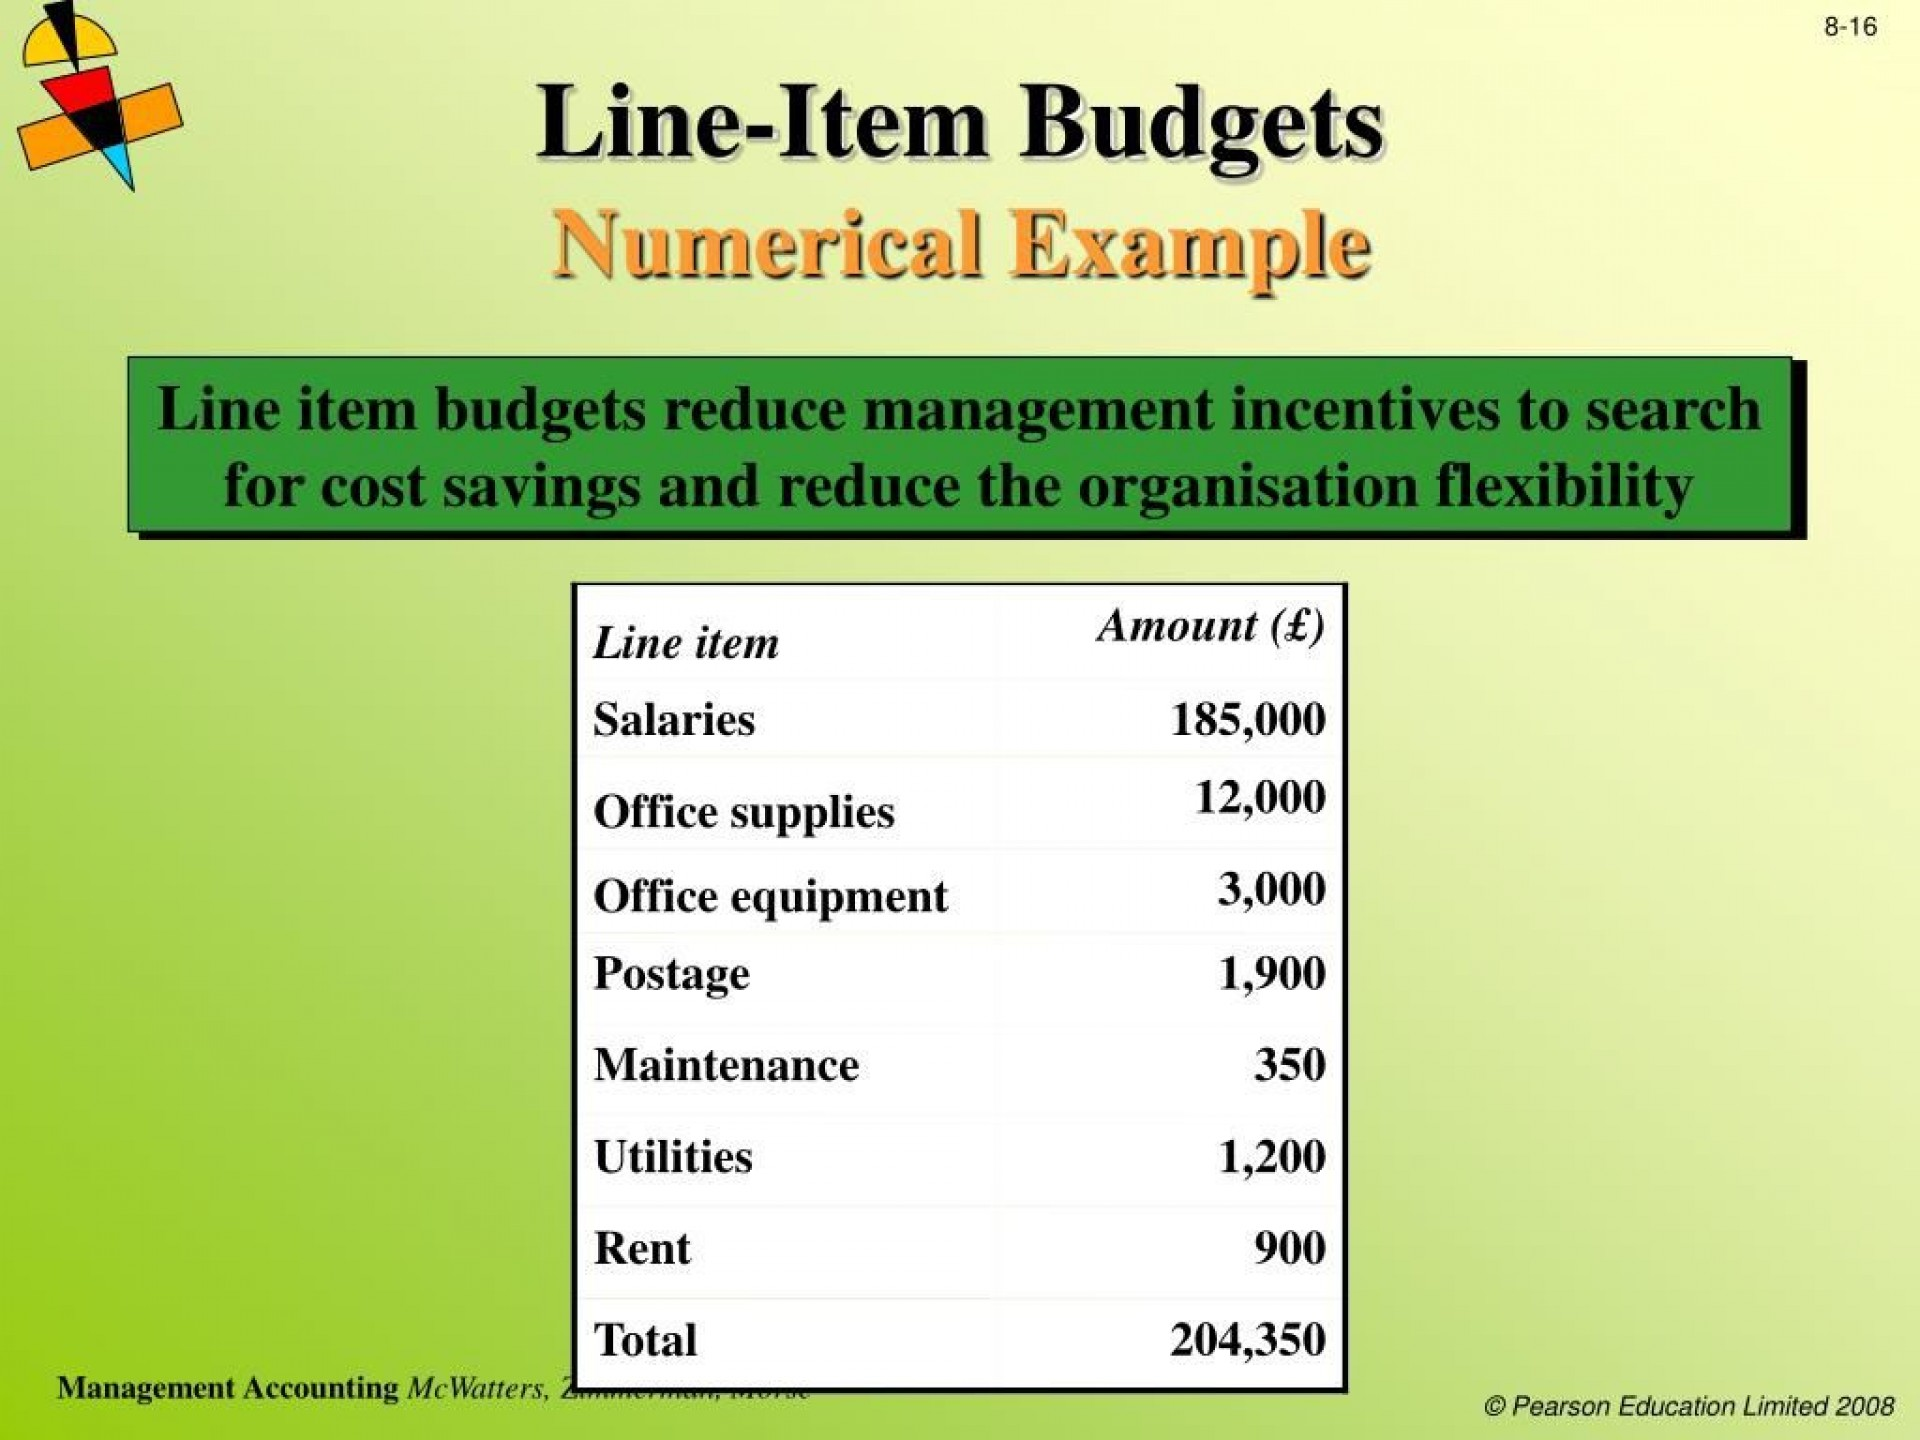 009 Incredible Line Item Operating Budget Example High Def  Line-item For Police Department Of Template Meaning With1920